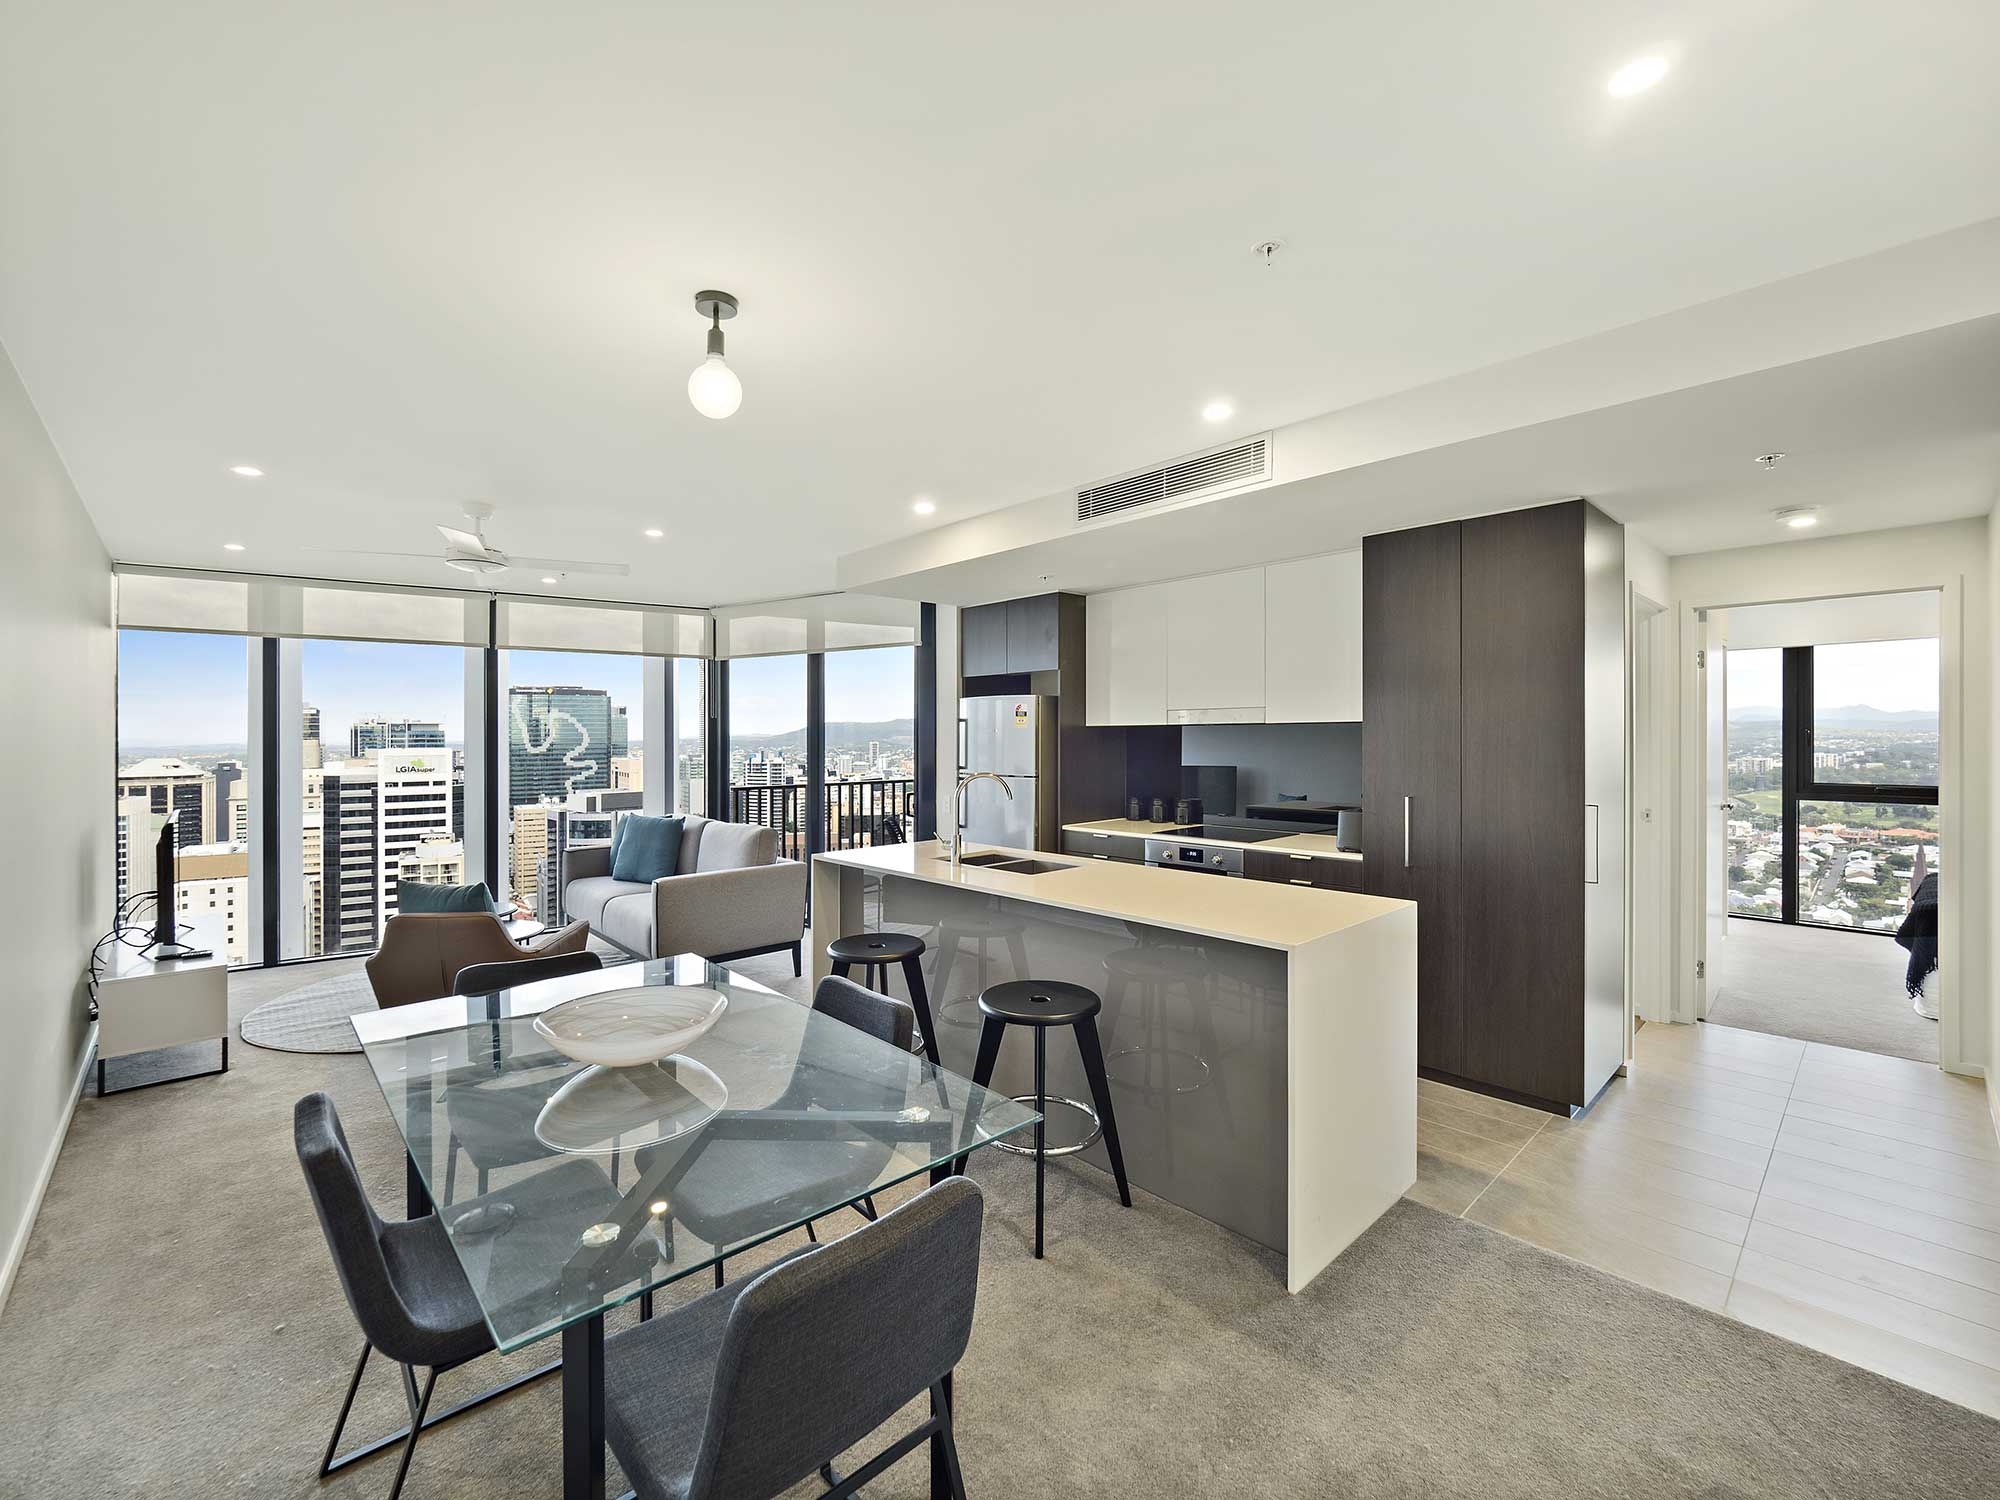 Apartment photography Brisbane  - click to see more images